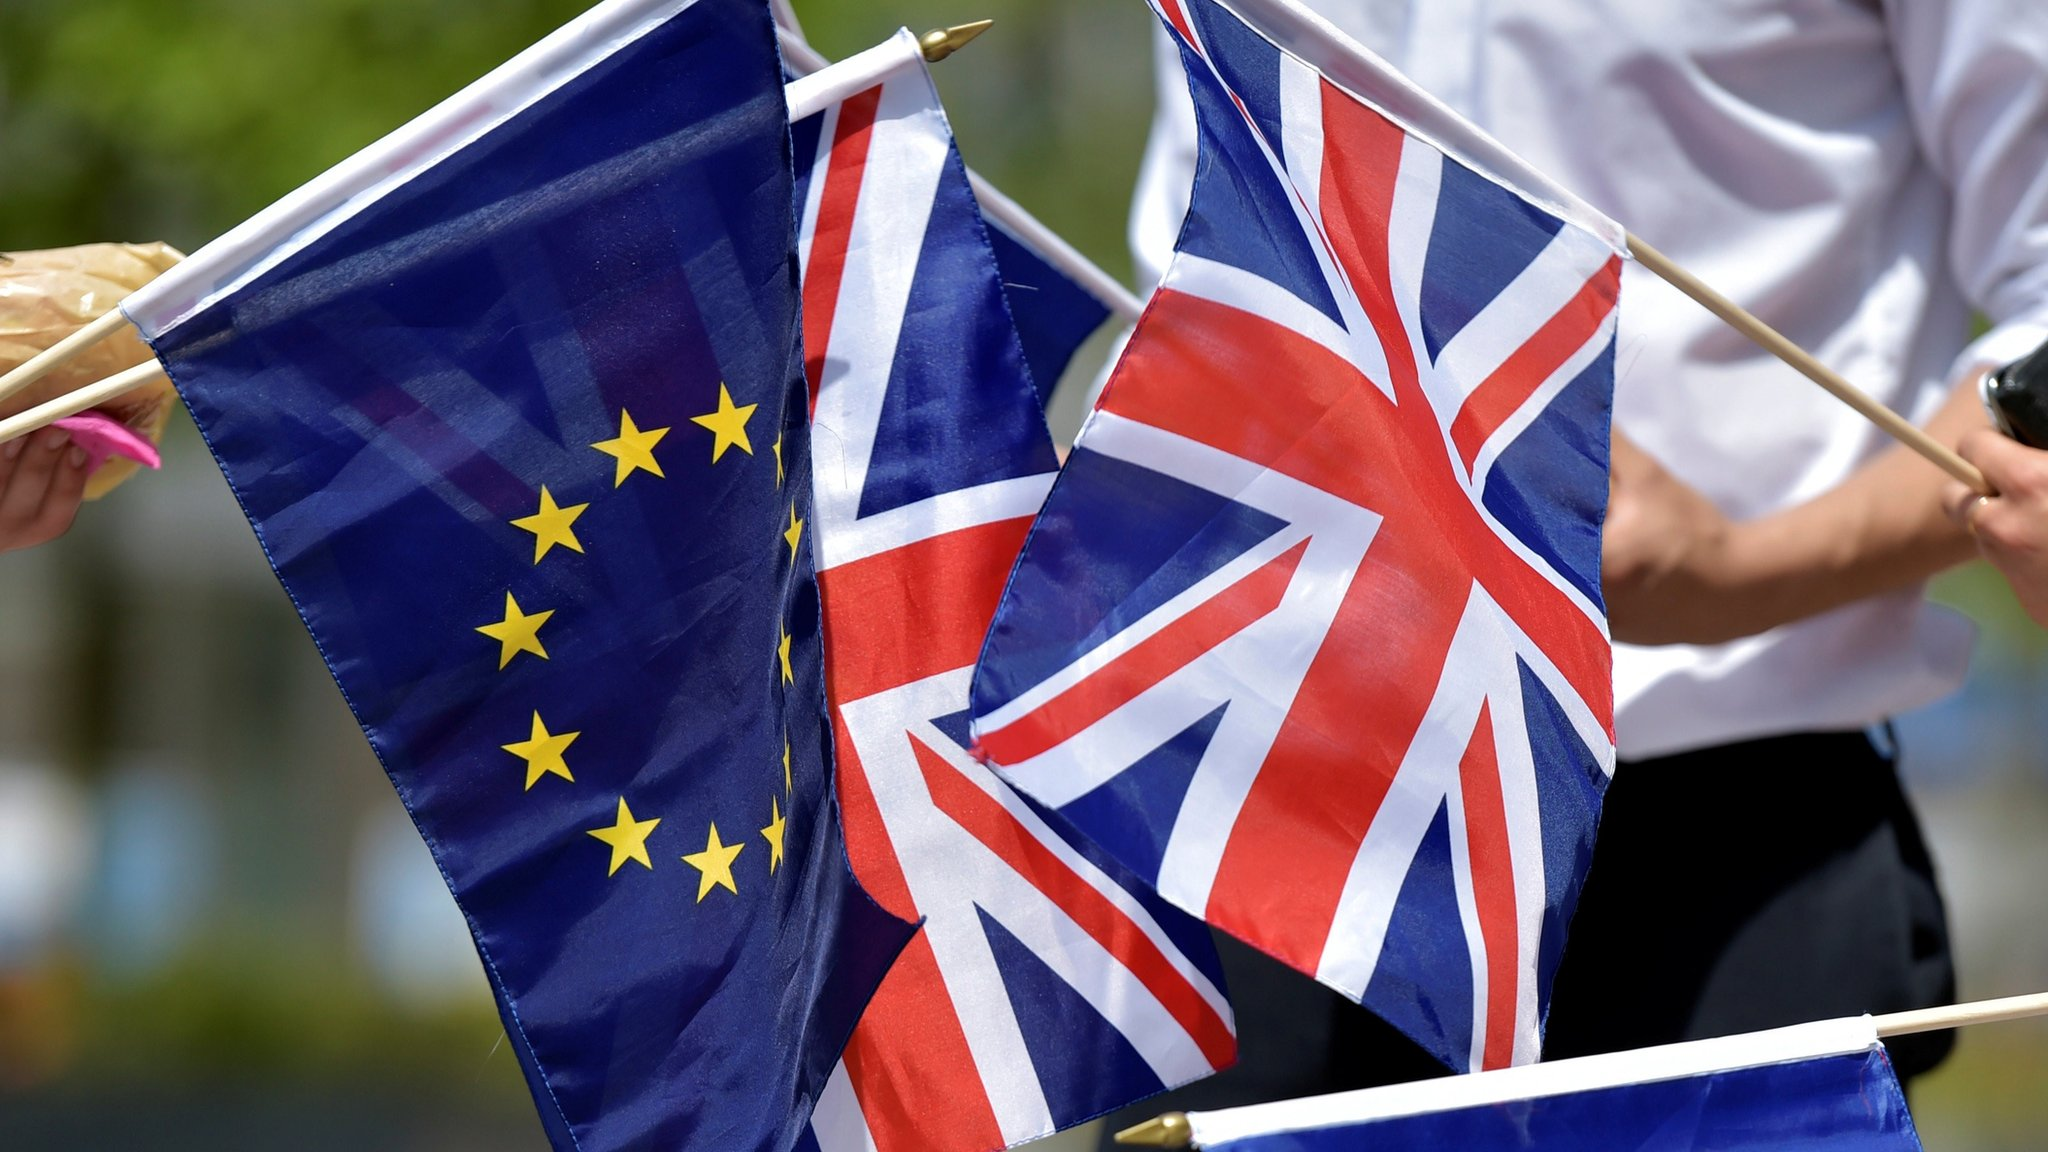 Brexit's uncharted territory: Can the EU save itself?